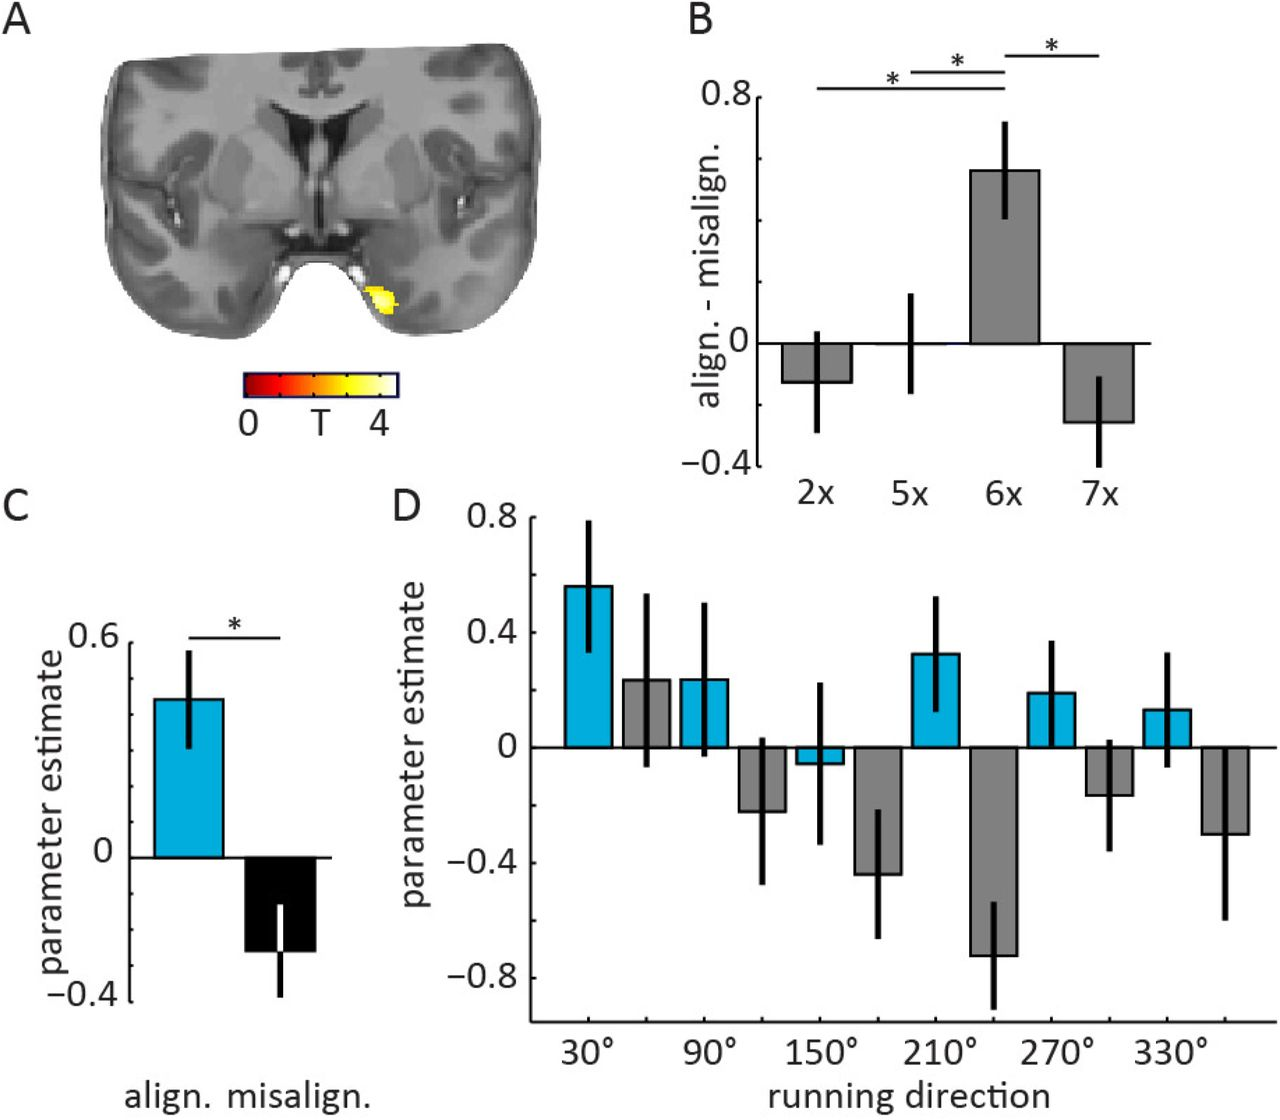 Entorhinal cortex minimises uncertainty for optimal behaviour | bioRxiv